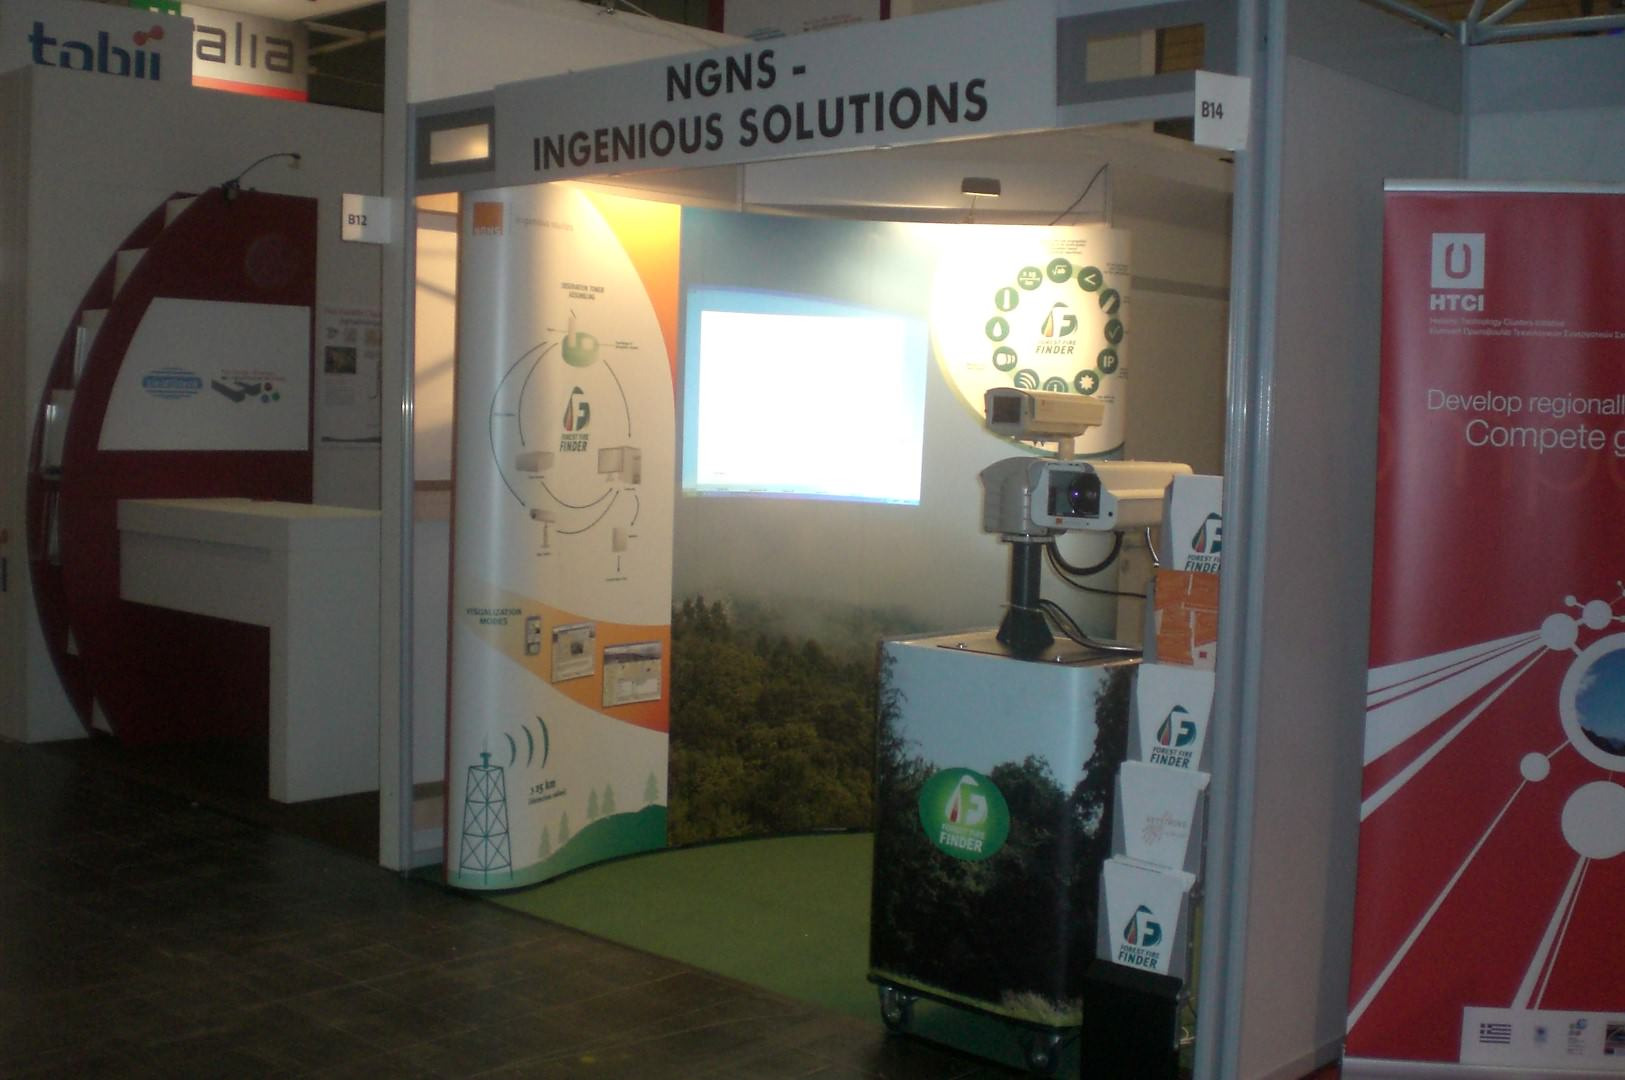 NGNS - Ingenious Solutions at CeBIT, Hannover, Germany